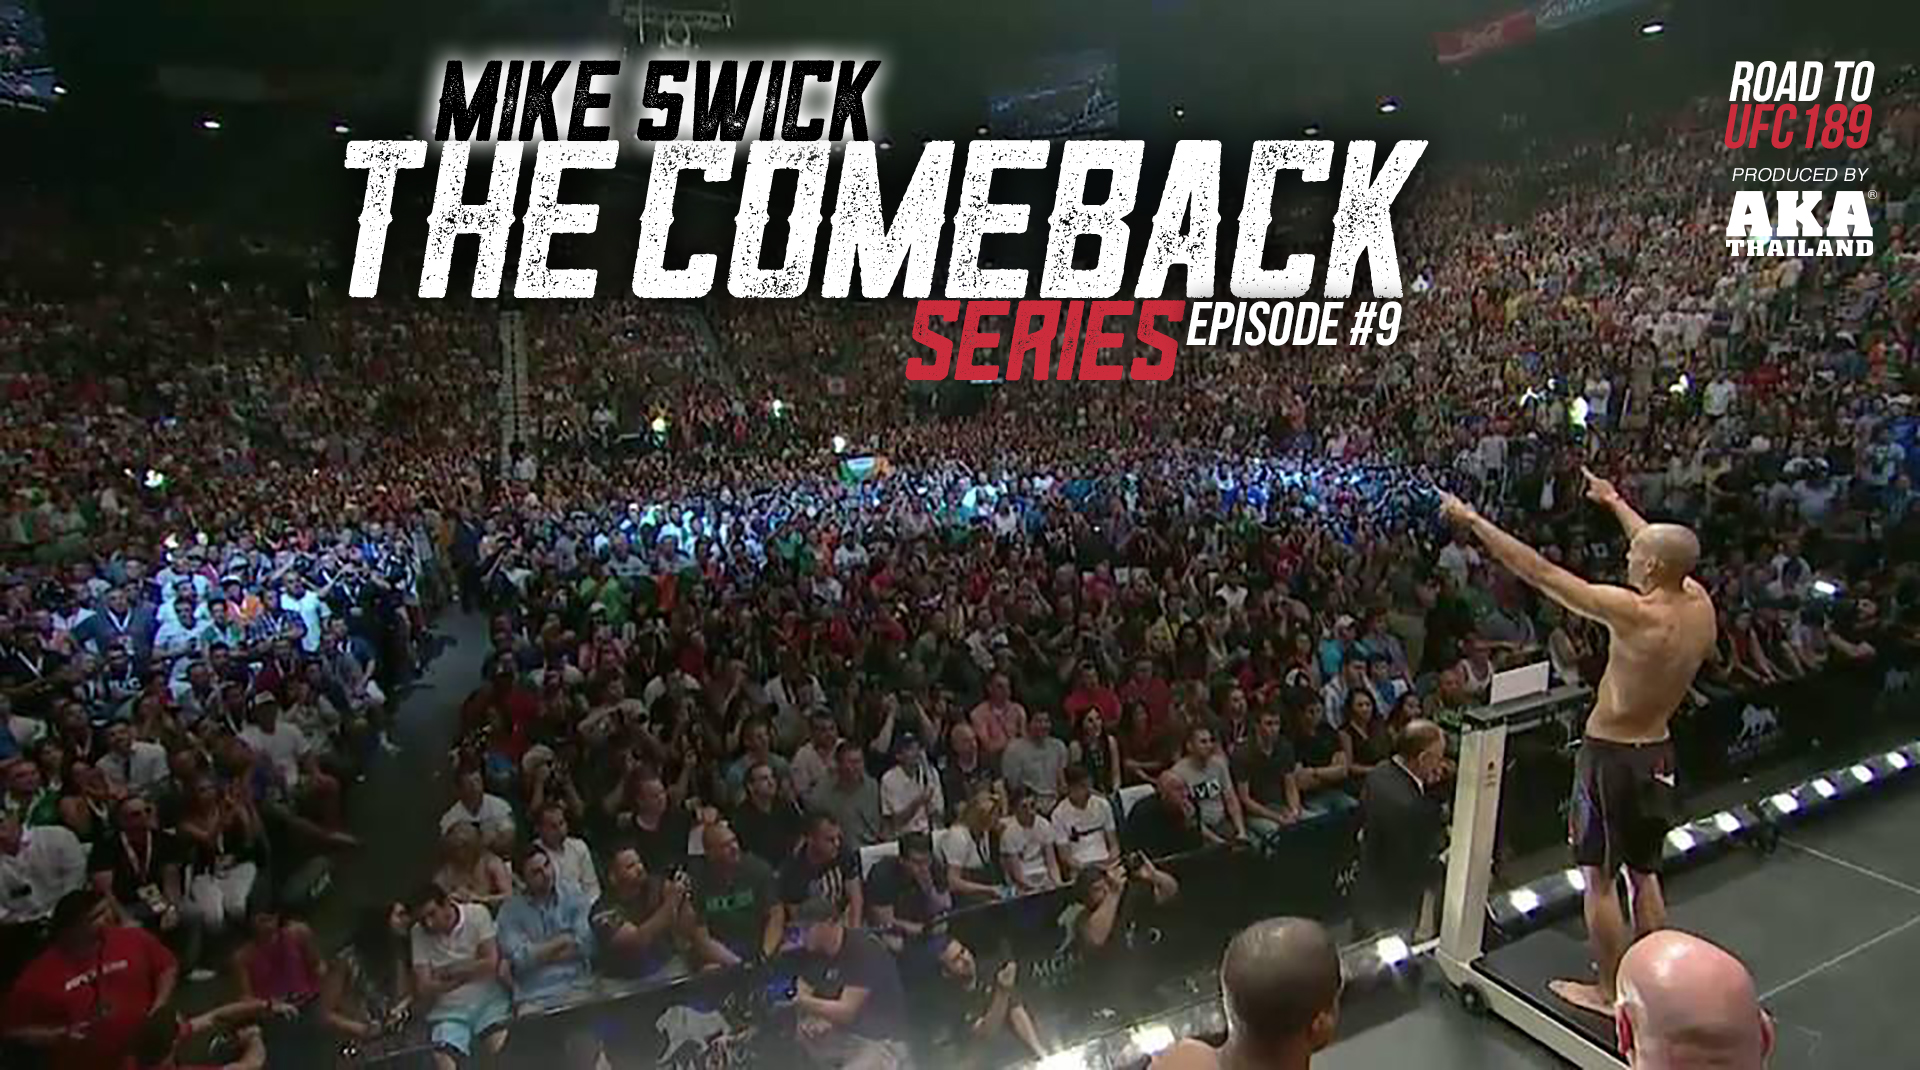 Mike Swick: The Comeback - Ep #9: The Fight